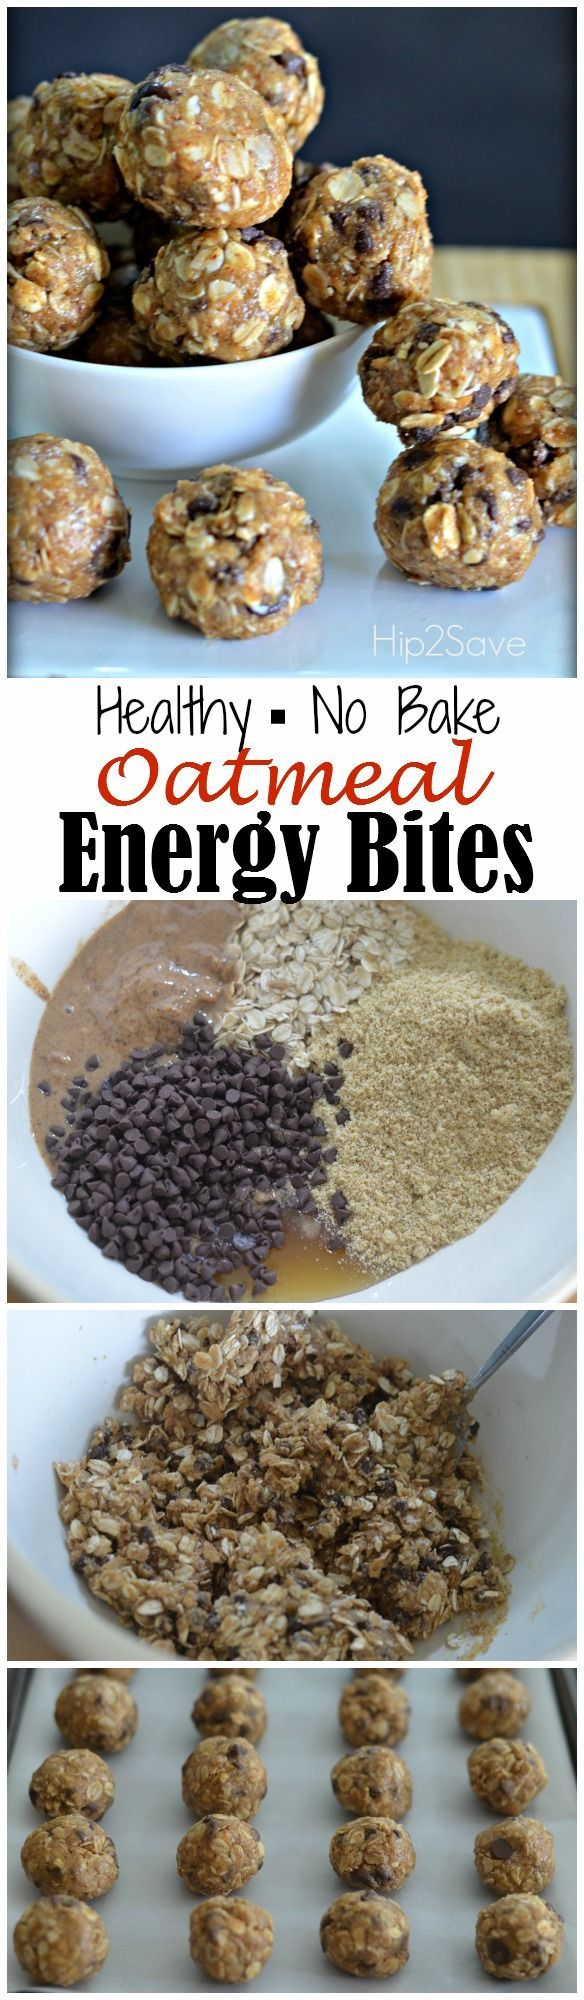 Oatmeal Energy Bites (Easy No-Bake Snack) – Hip2Save . Dates and date syrup instead of honey.